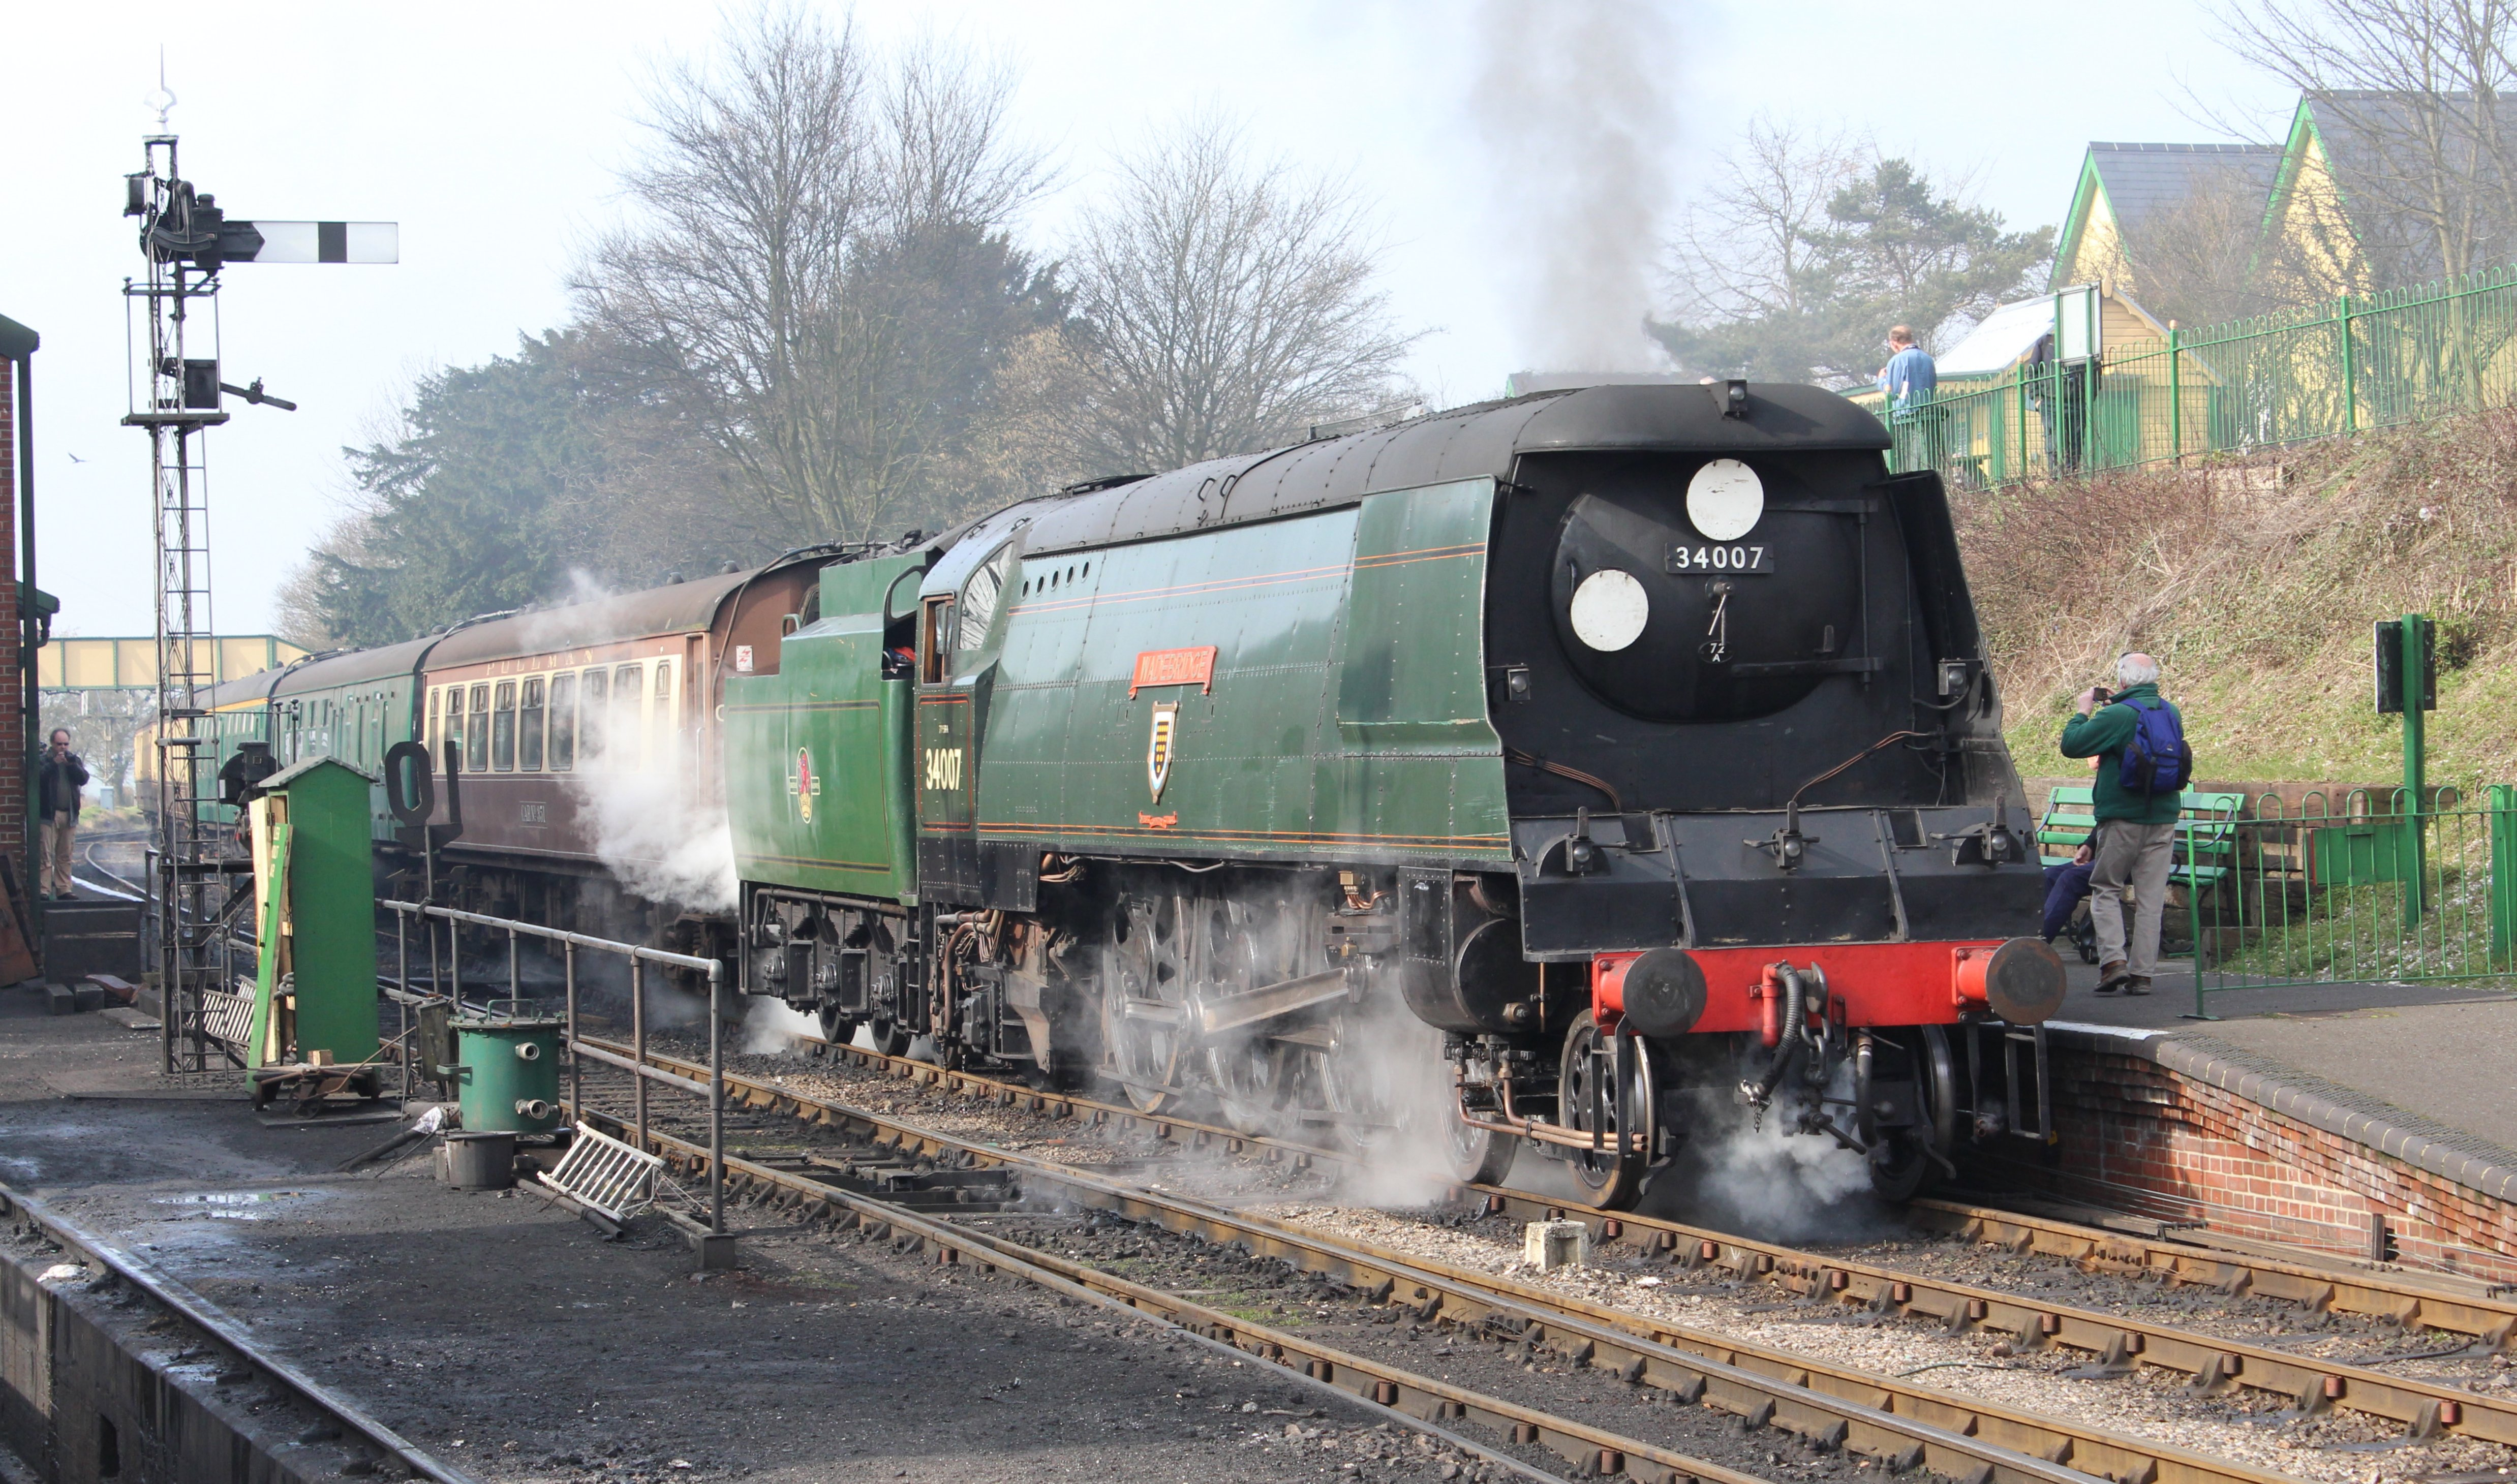 34007 >> 2014 Watercress Line Spring Steam Gala Ropley Unrebuilt West